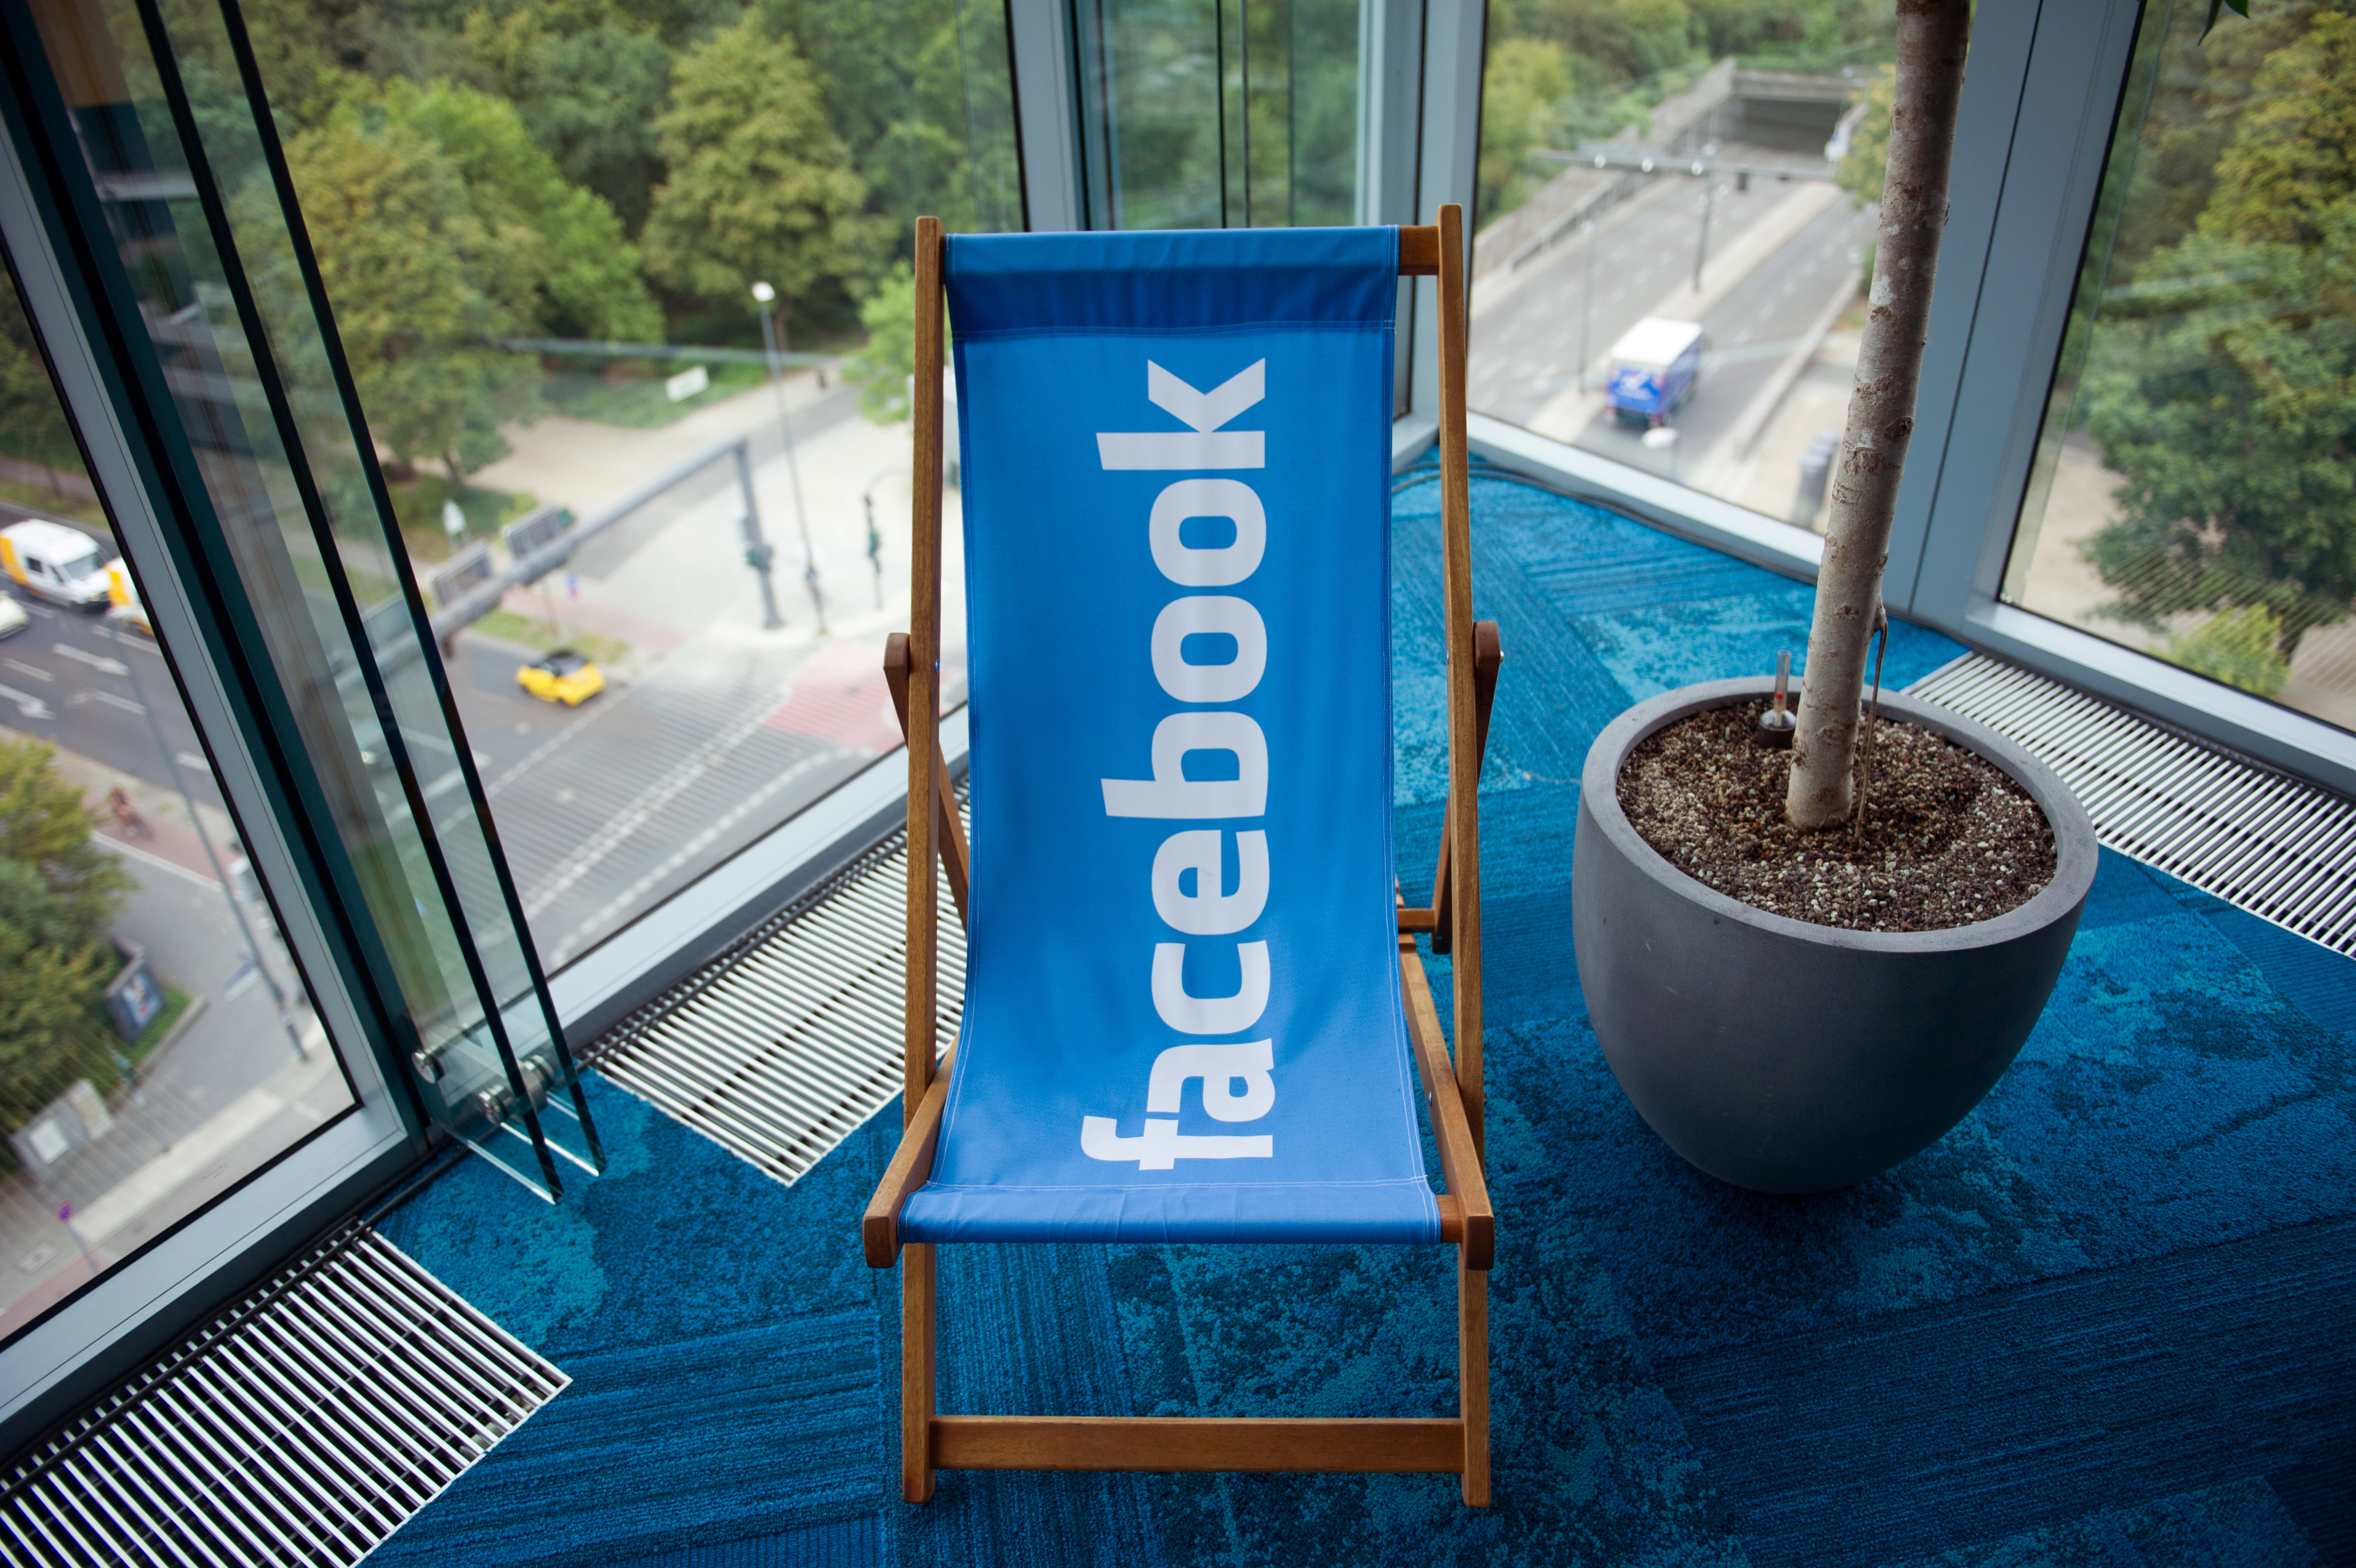 Facebook's reviewers will take a back seat in the Trending process.